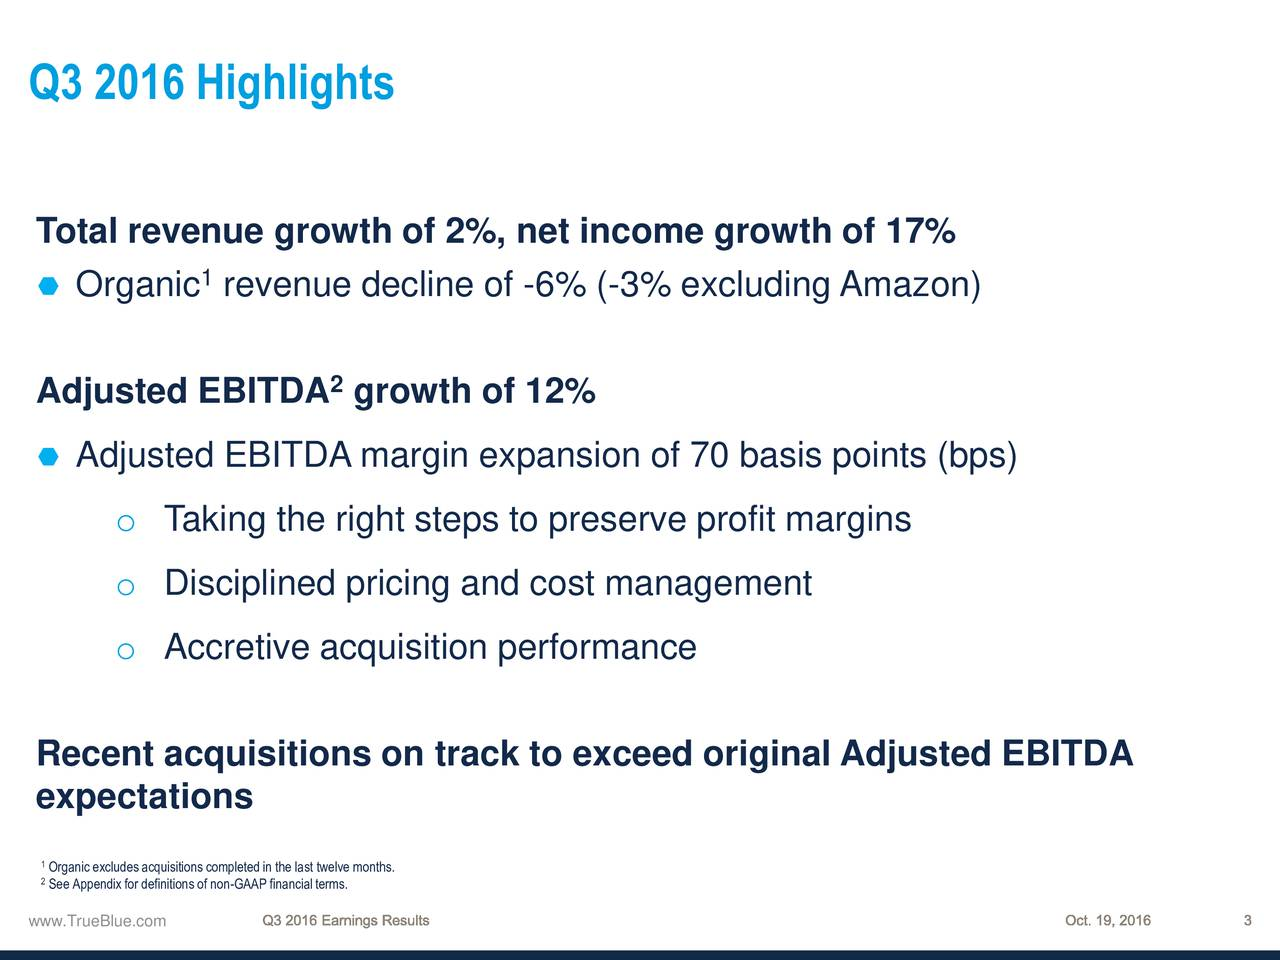 Total revenue growth of 2%, net income growth of 17% Organic revenue decline of -6% (-3% excluding Amazon) Adjusted EBITDA growth of 12% Adjusted EBITDA margin expansion of 70 basis points (bps) o Taking the right steps to preserve profit margins o Disciplined pricing and cost management o Accretive acquisition performance Recent acquisitions on track to exceed original Adjusted EBITDA expectations See Appendixfor definitions of non-GAAP financialterms.e months. www.TrueBlue.com